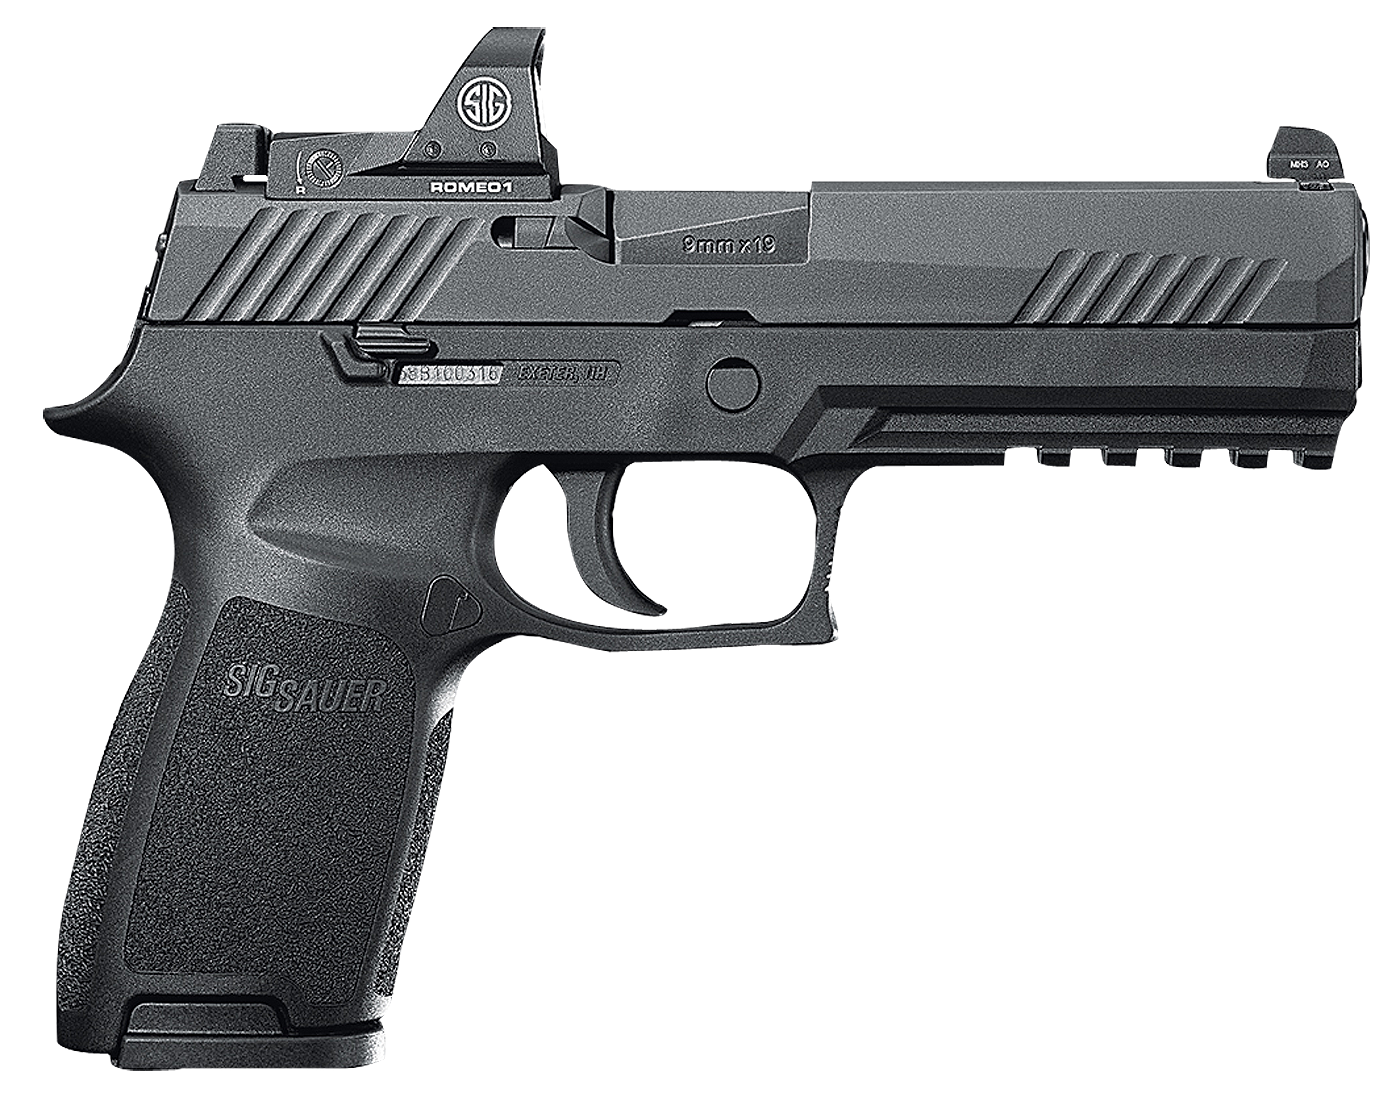 """80% Sig Sauer - P320 Full Size RX Double 9mm Luger 4.7"""" 10+1 - 2 Mags - Black Polymer Grip - Black Nitron Stainless Steel"""